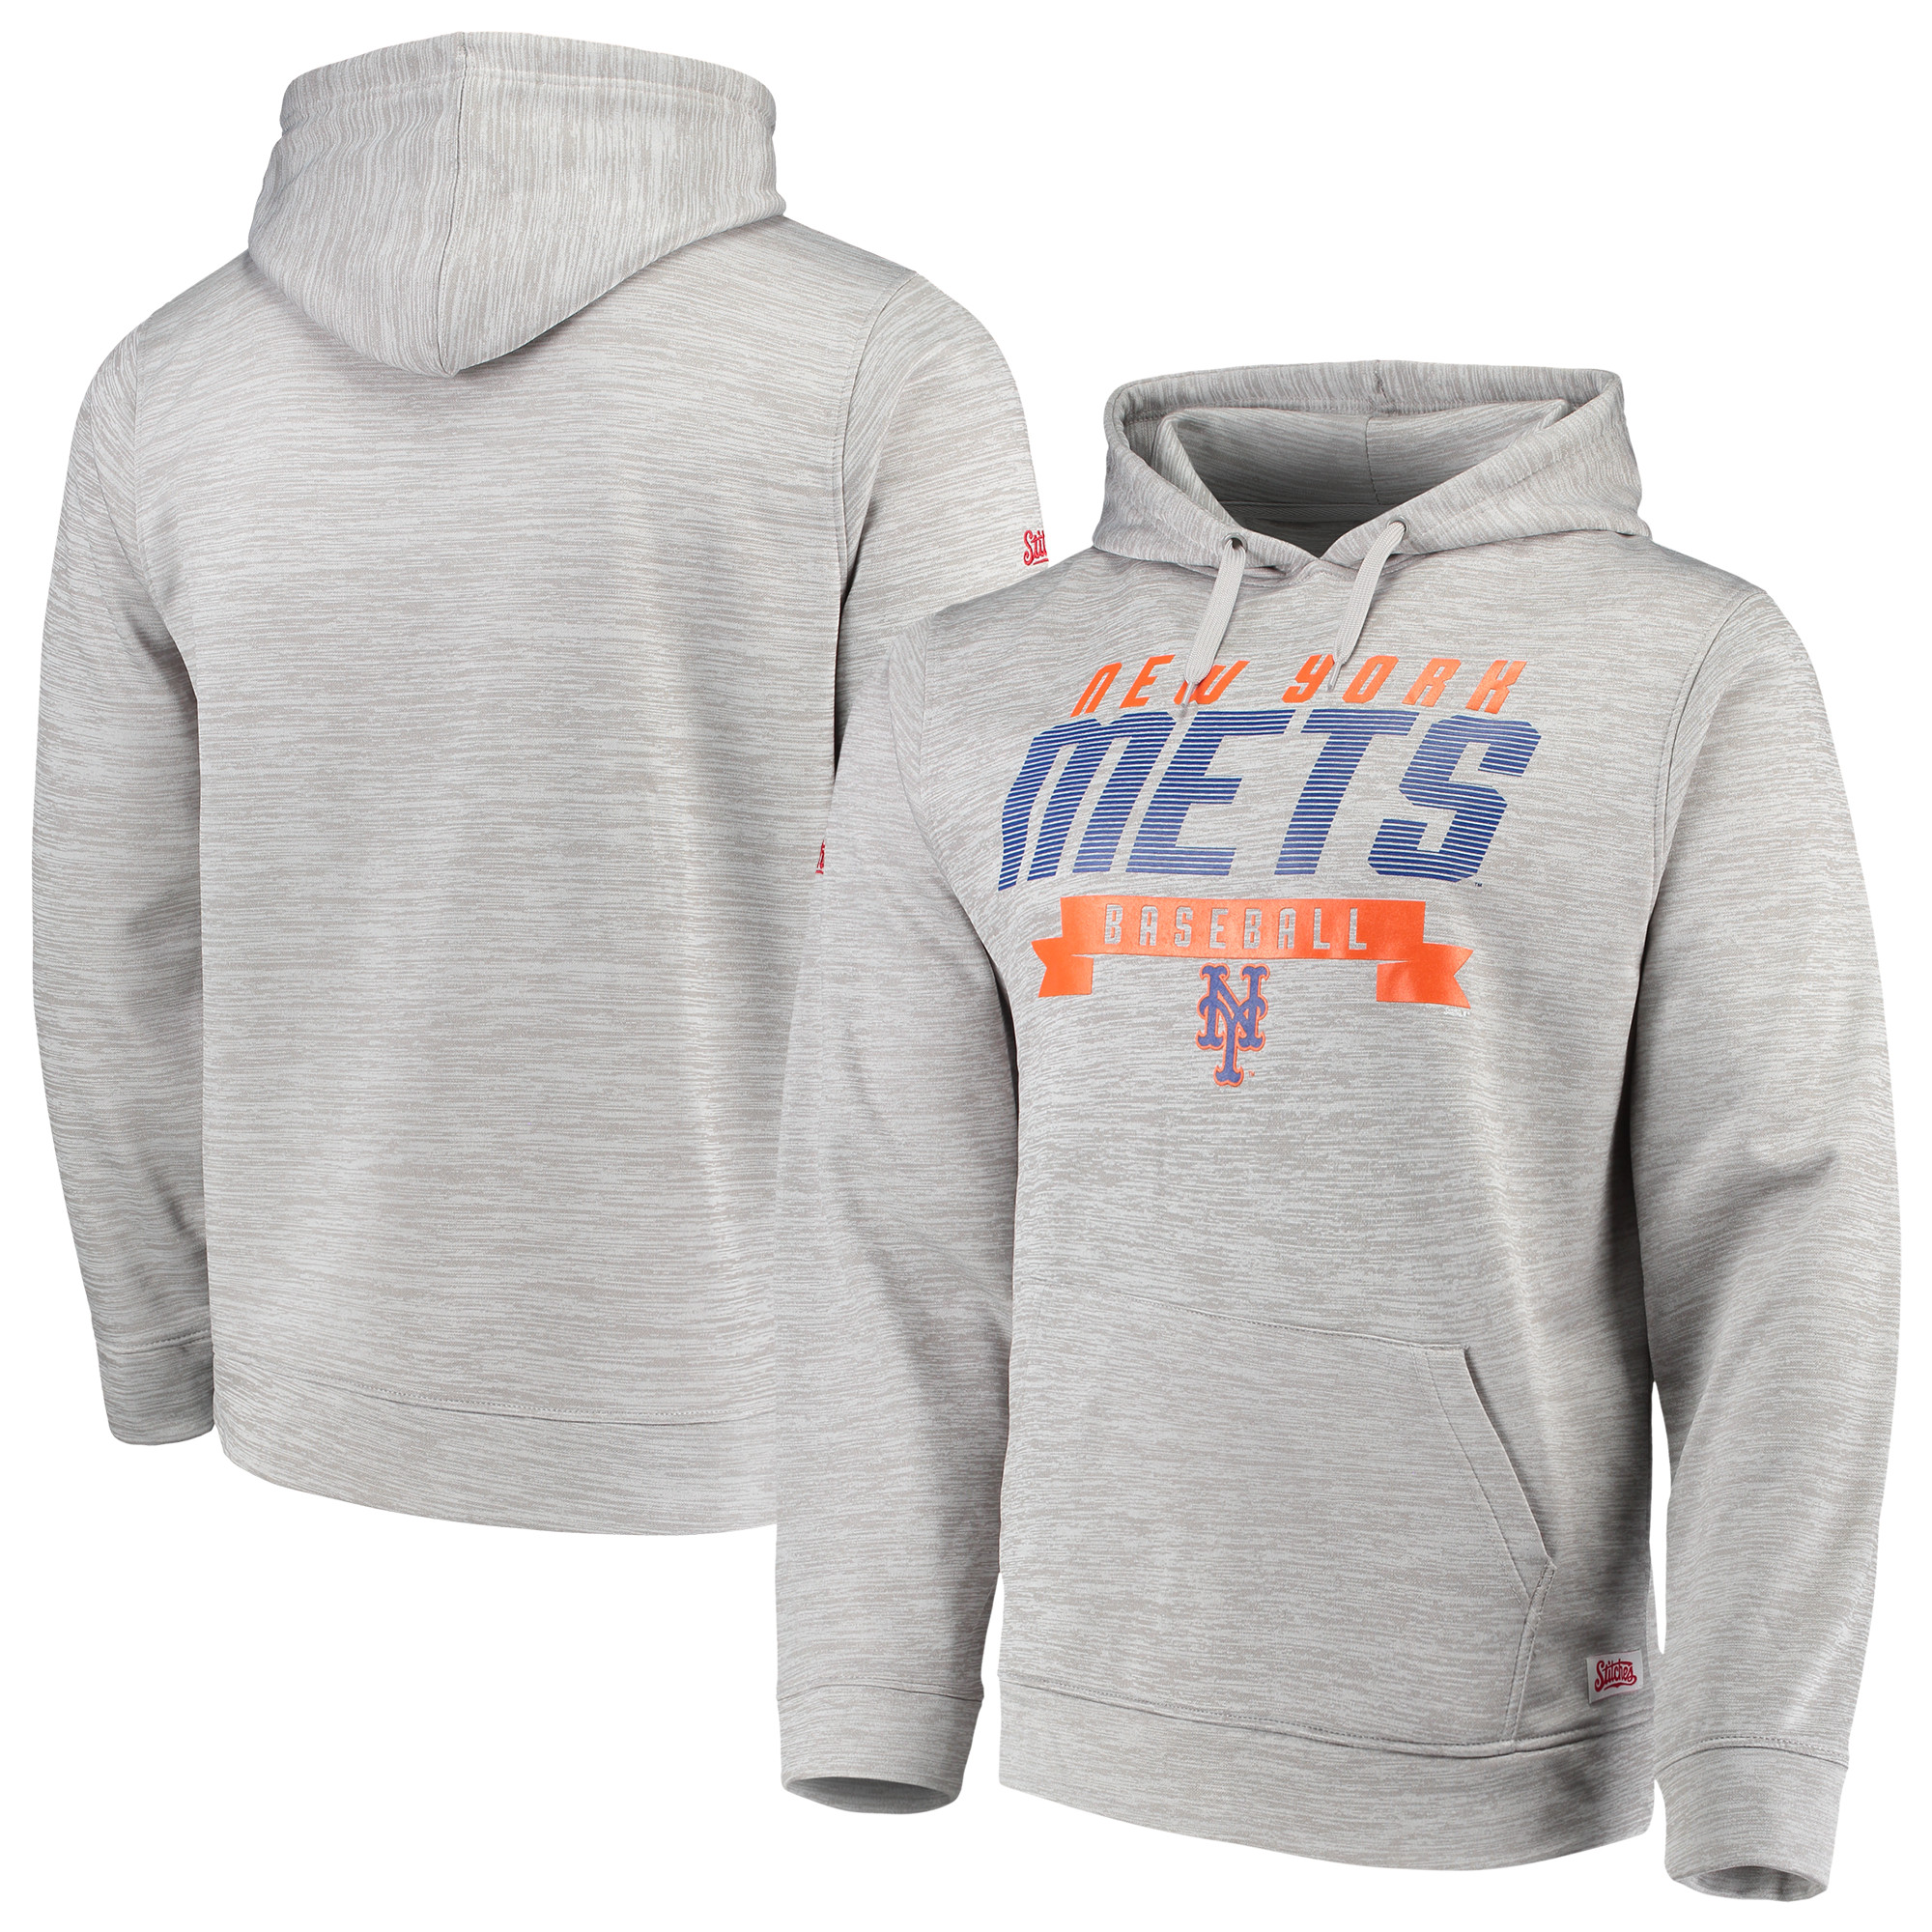 New York Mets Stitches Poly Pullover Hoodie - Heathered Gray